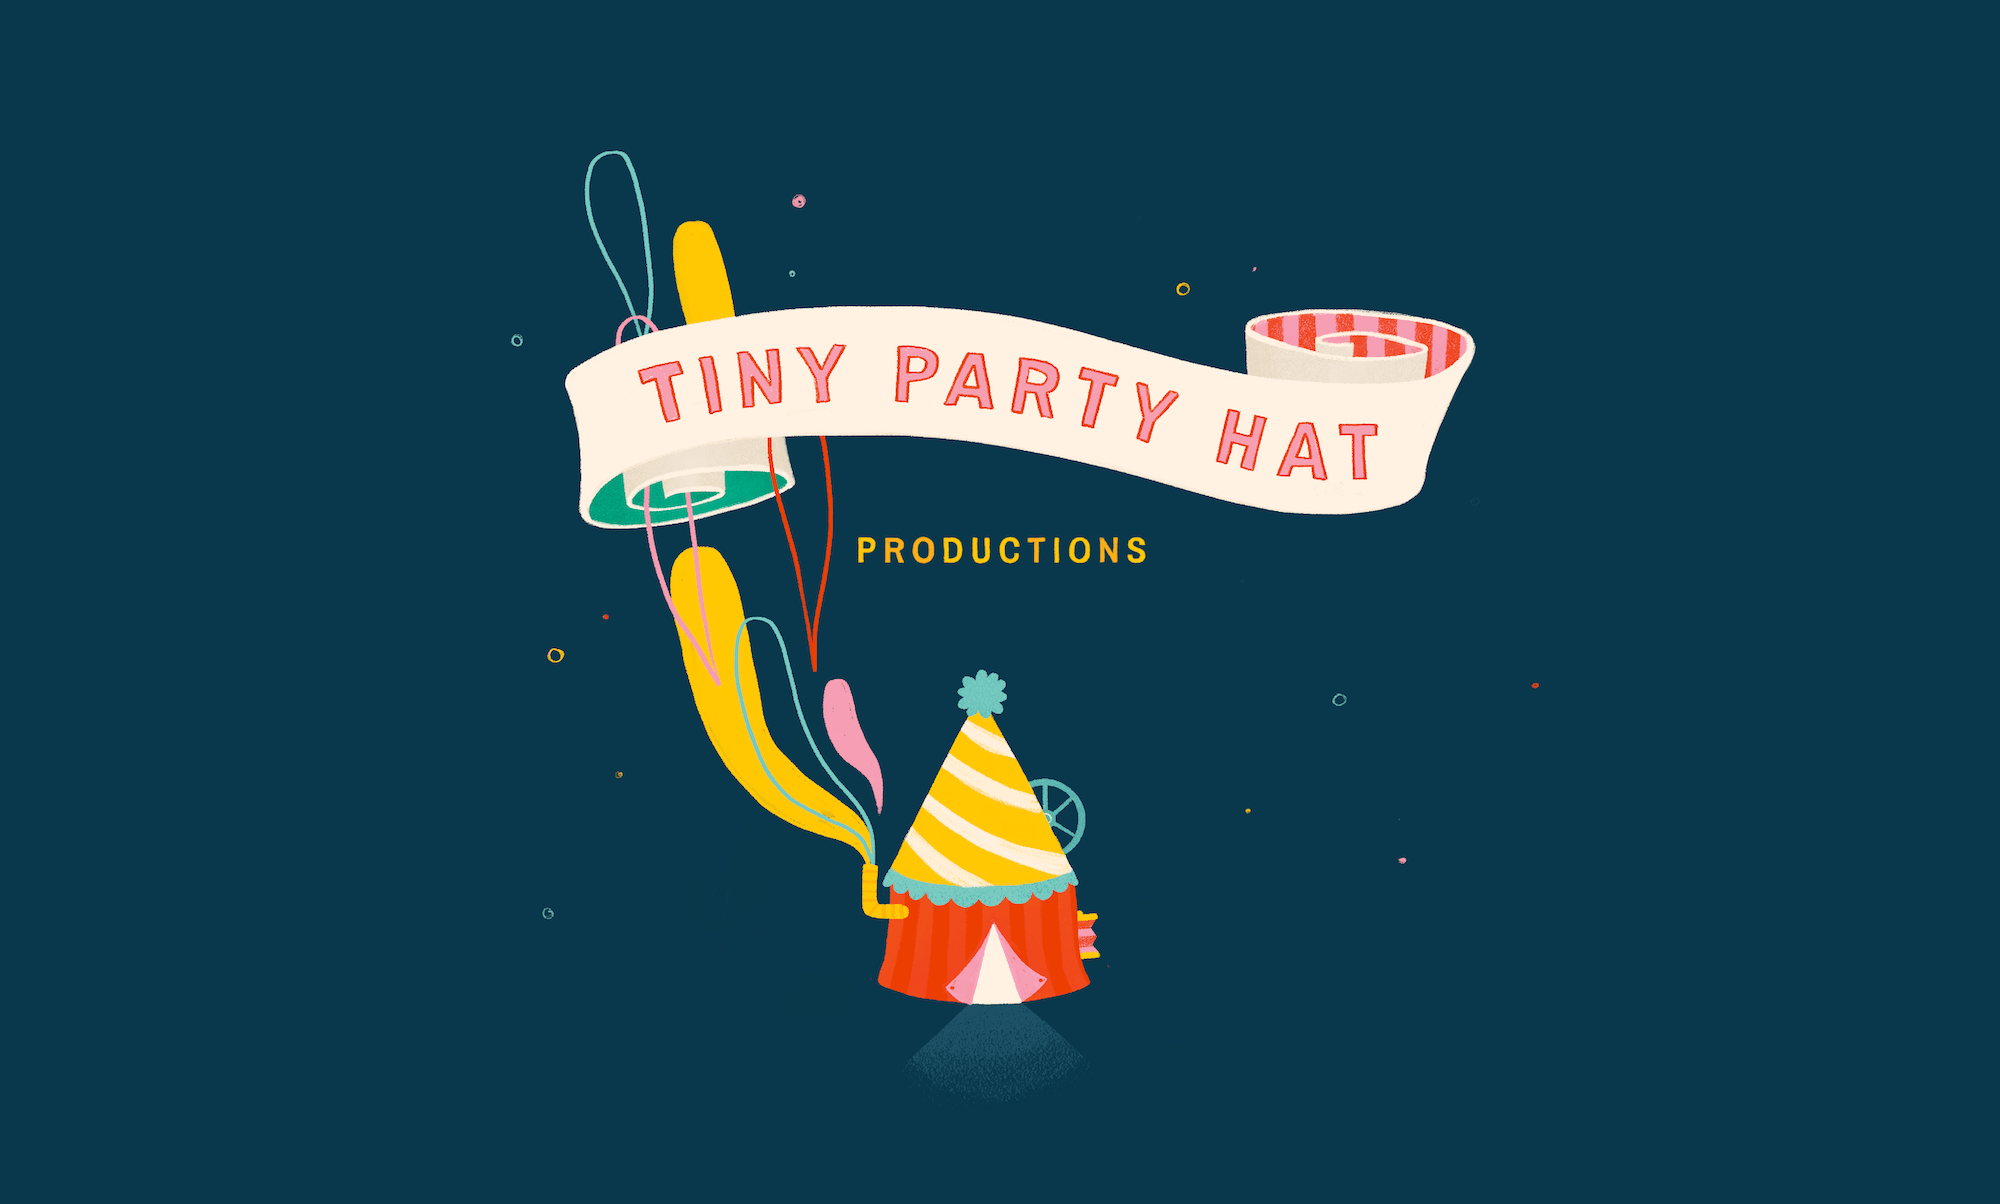 Tiny-Party-Hat-Production_hero-image-tent-factory-banner-illustration_WebOptimized.png